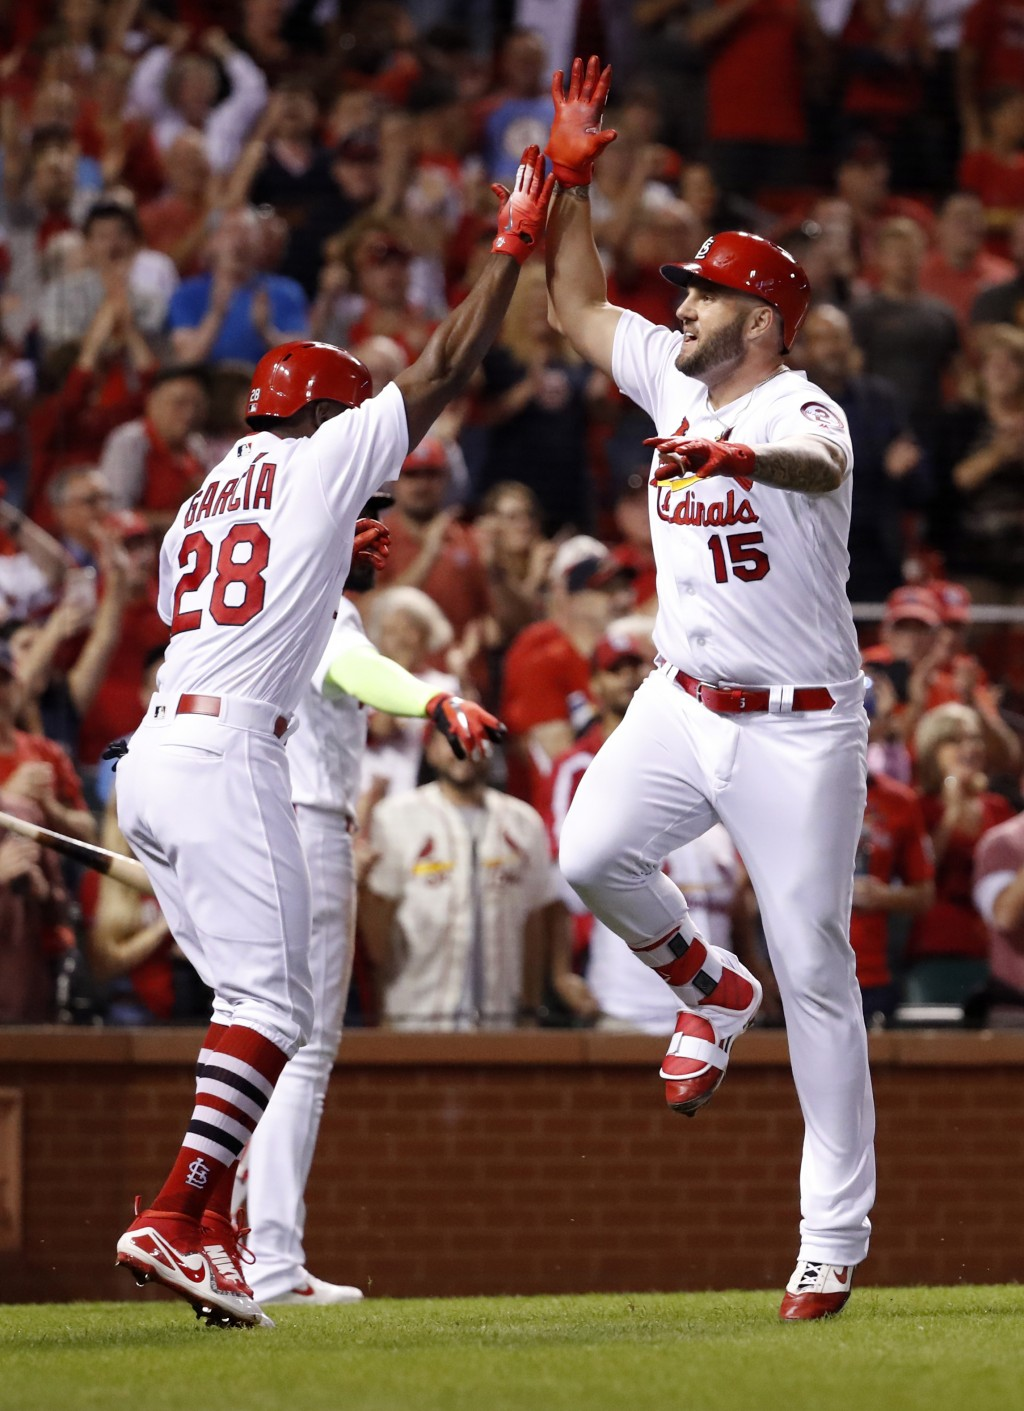 St. Louis Cardinals' Matt Adams (15) is congratulated by teammate Adolis Garcia (28) after hitting a three-run home run during the eighth inning of a